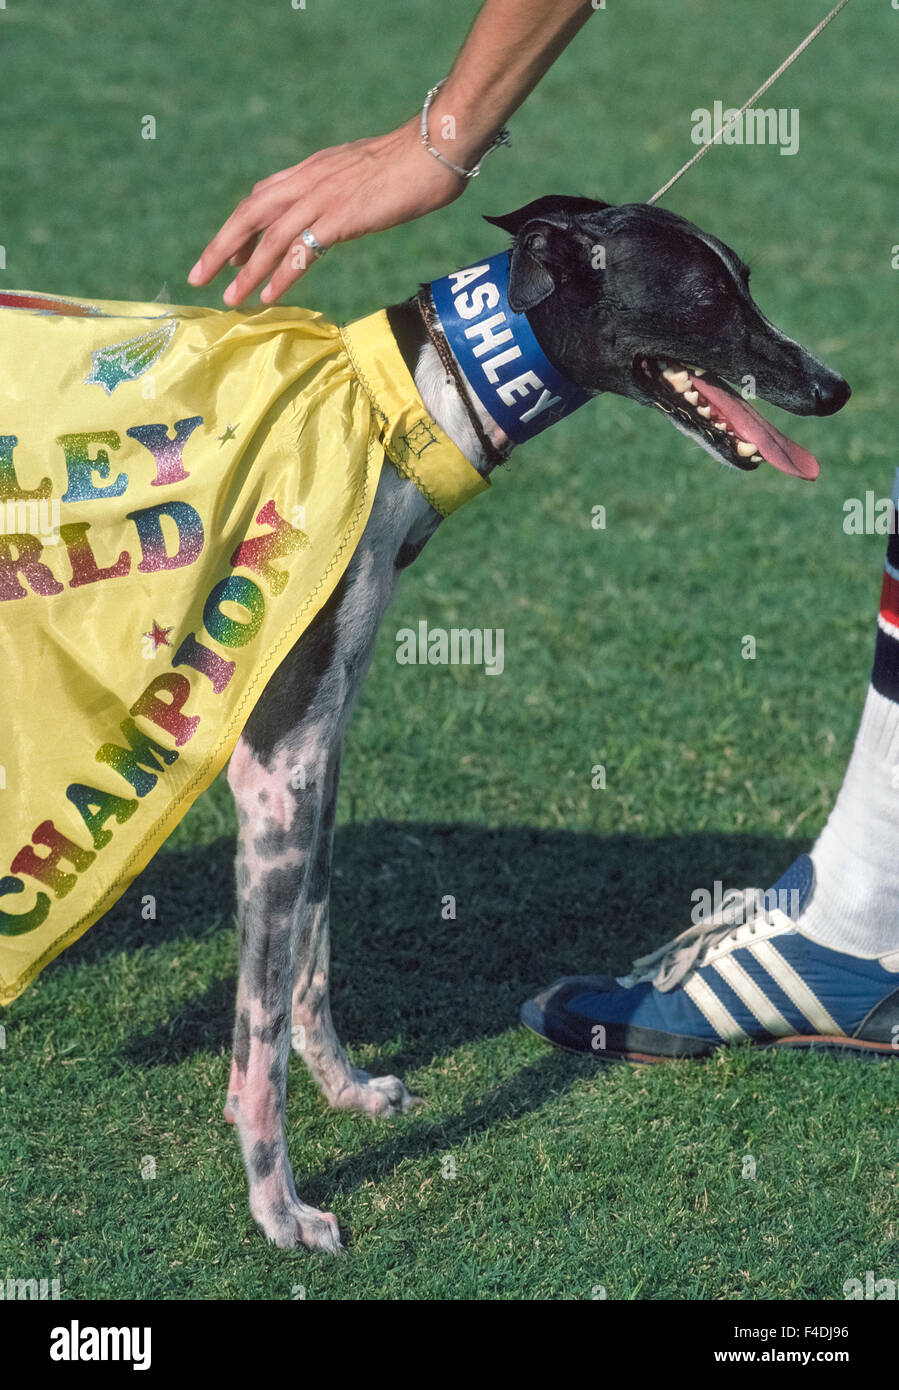 The famous disc-catching dog Ashley Whippet is petted by his owner at the annual Frisbee Dog World Championship - Stock Image